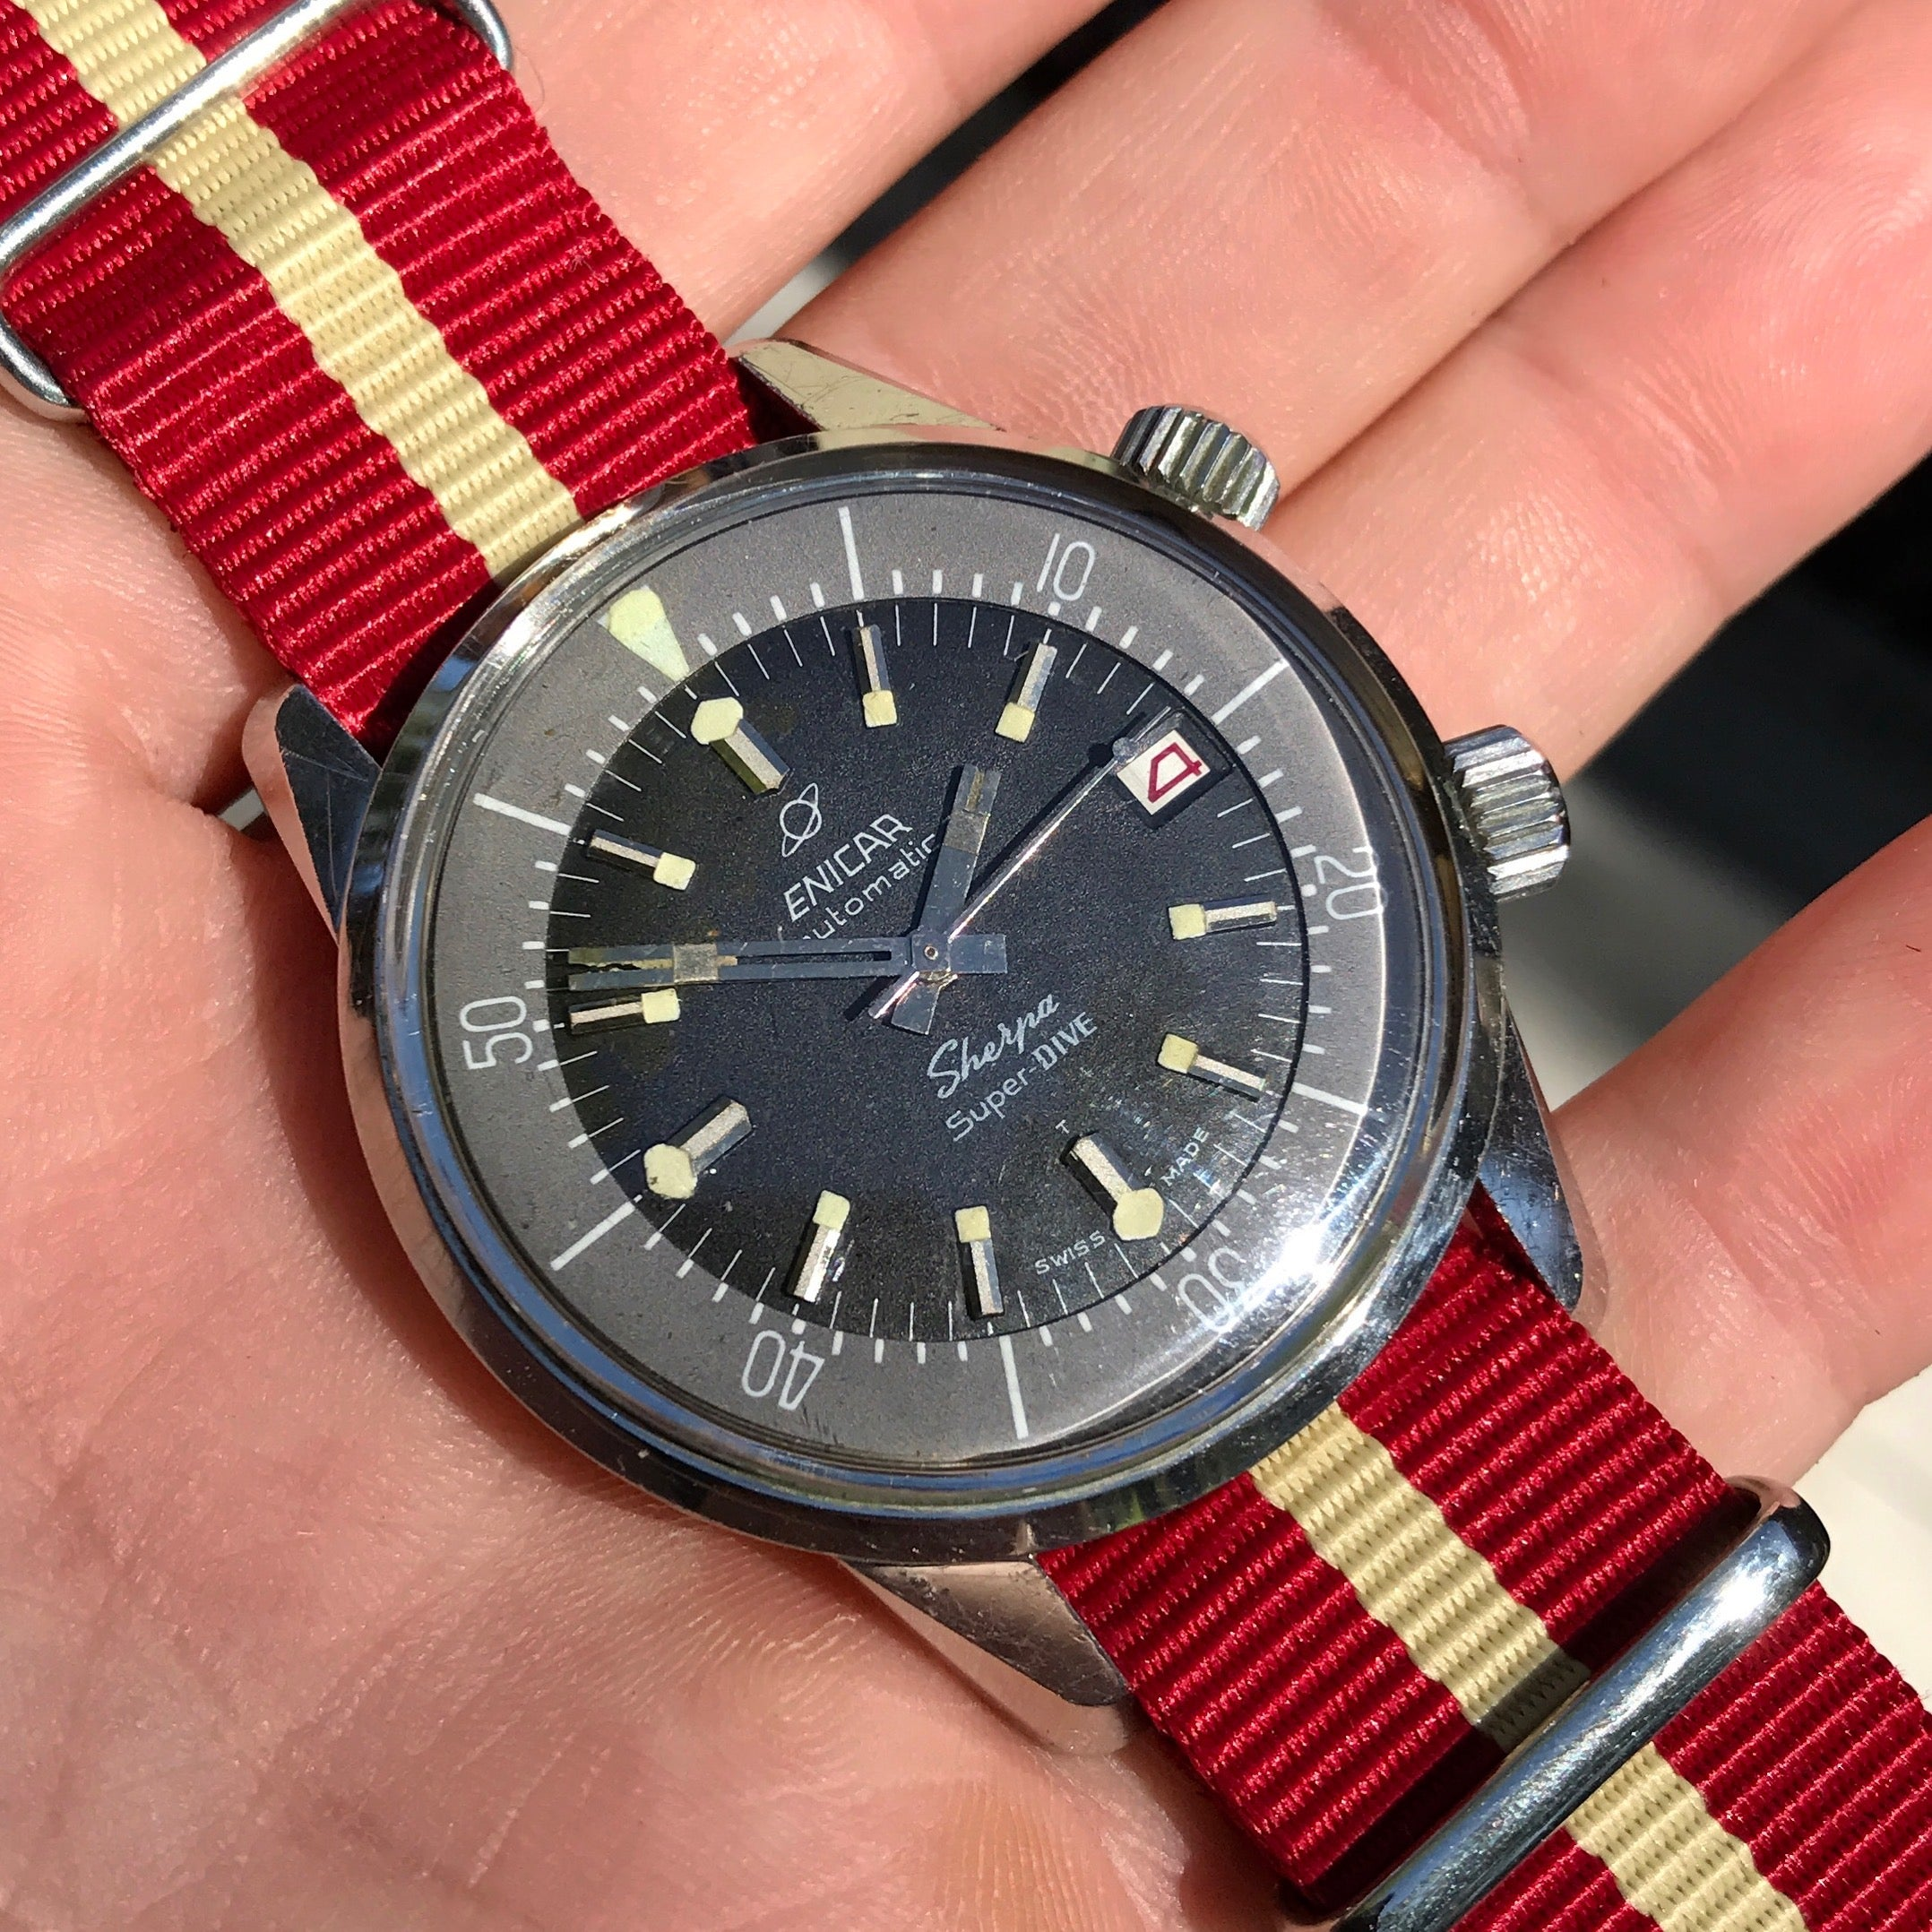 Vintage Enicar Sherpa Super Dive 2342 Polish Military Stainless Steel Automatic Compressor Wristwatch 1960's - Hashtag Watch Company